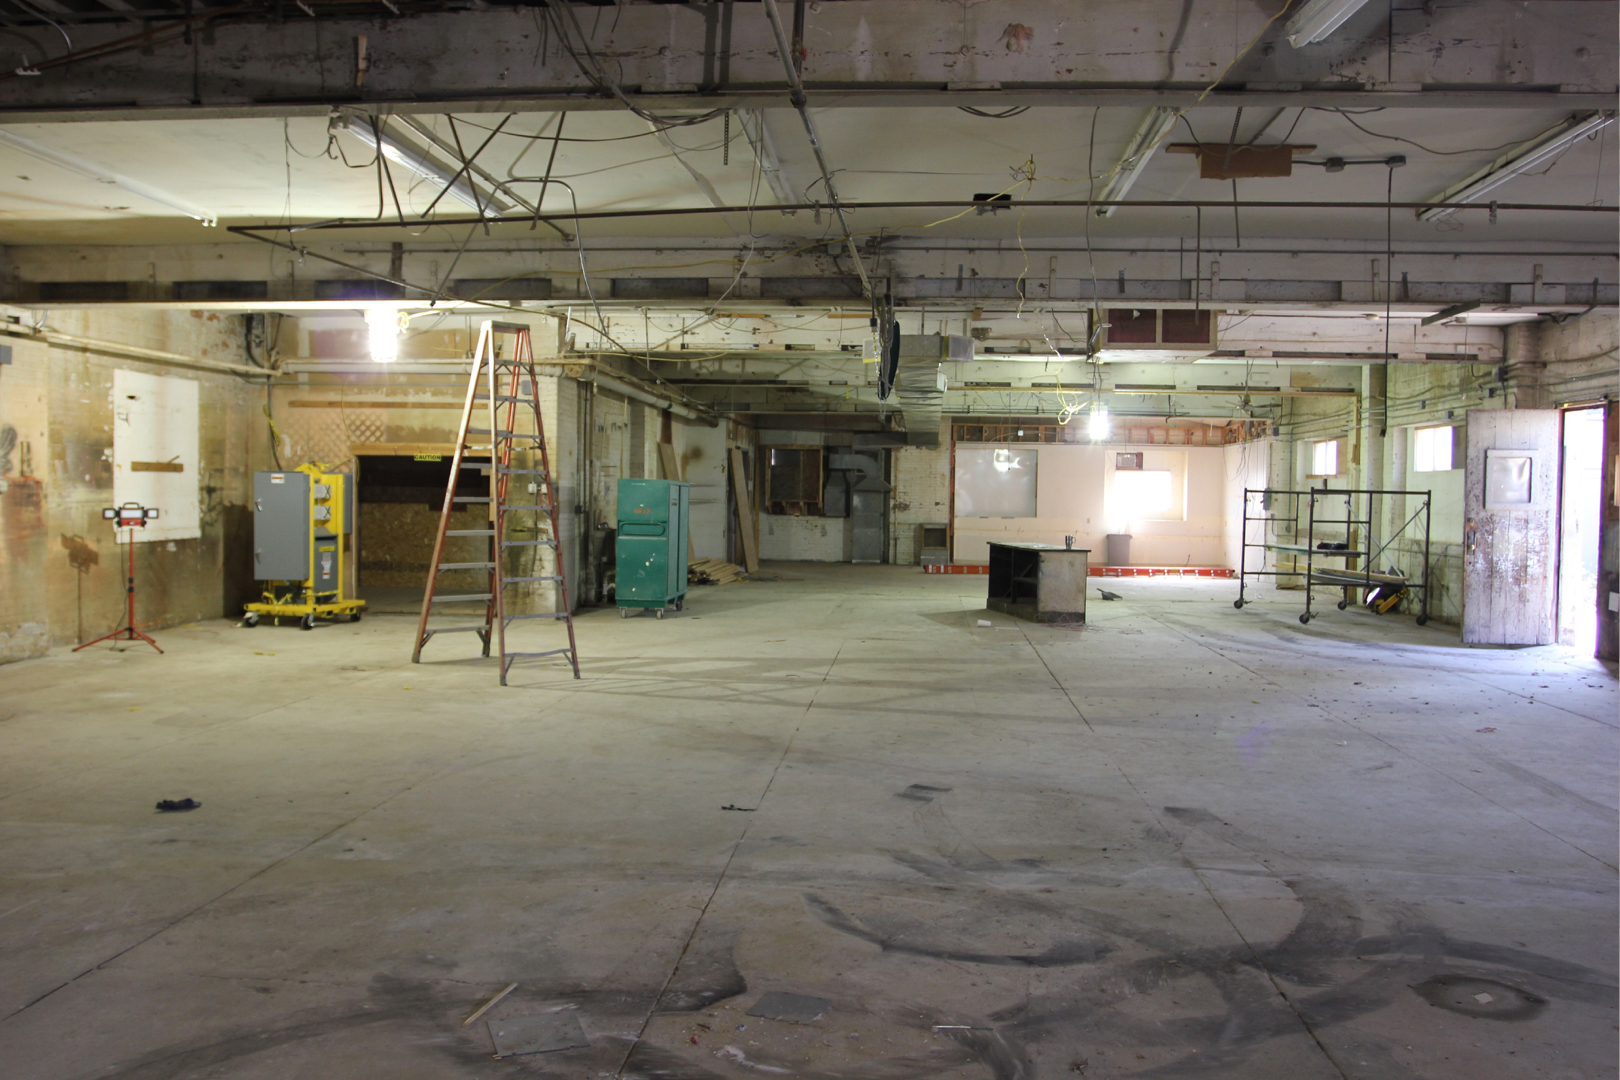 Interior of the 1034 Wealthy Street Construction Site